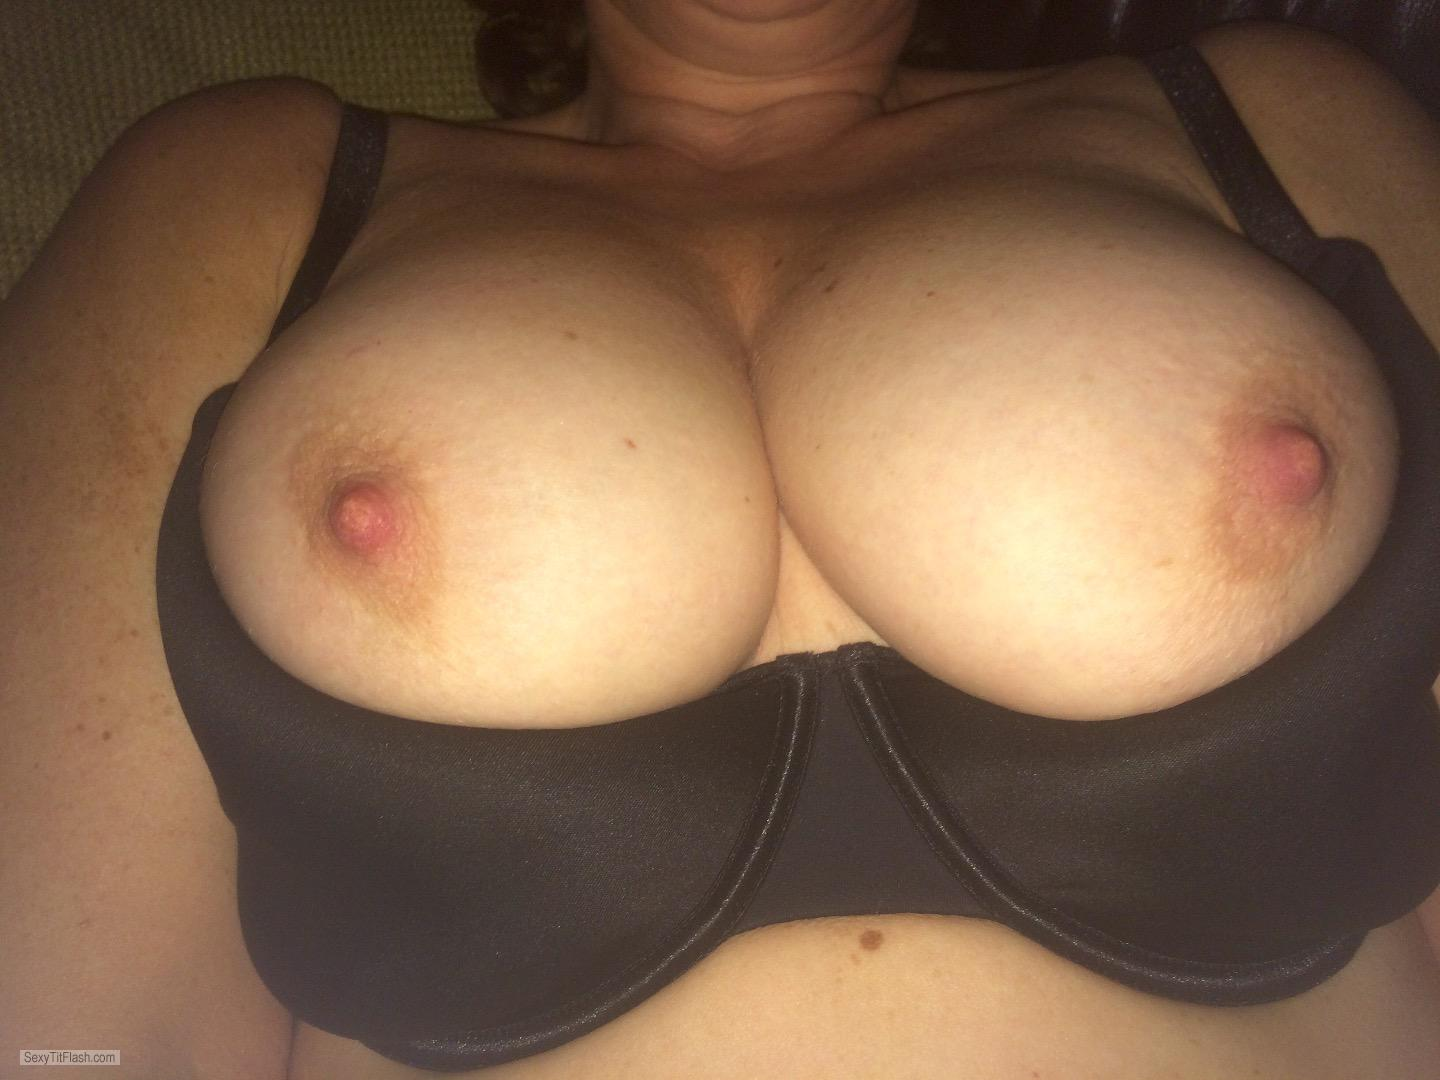 Best boob dirty kik of girls showing their tits